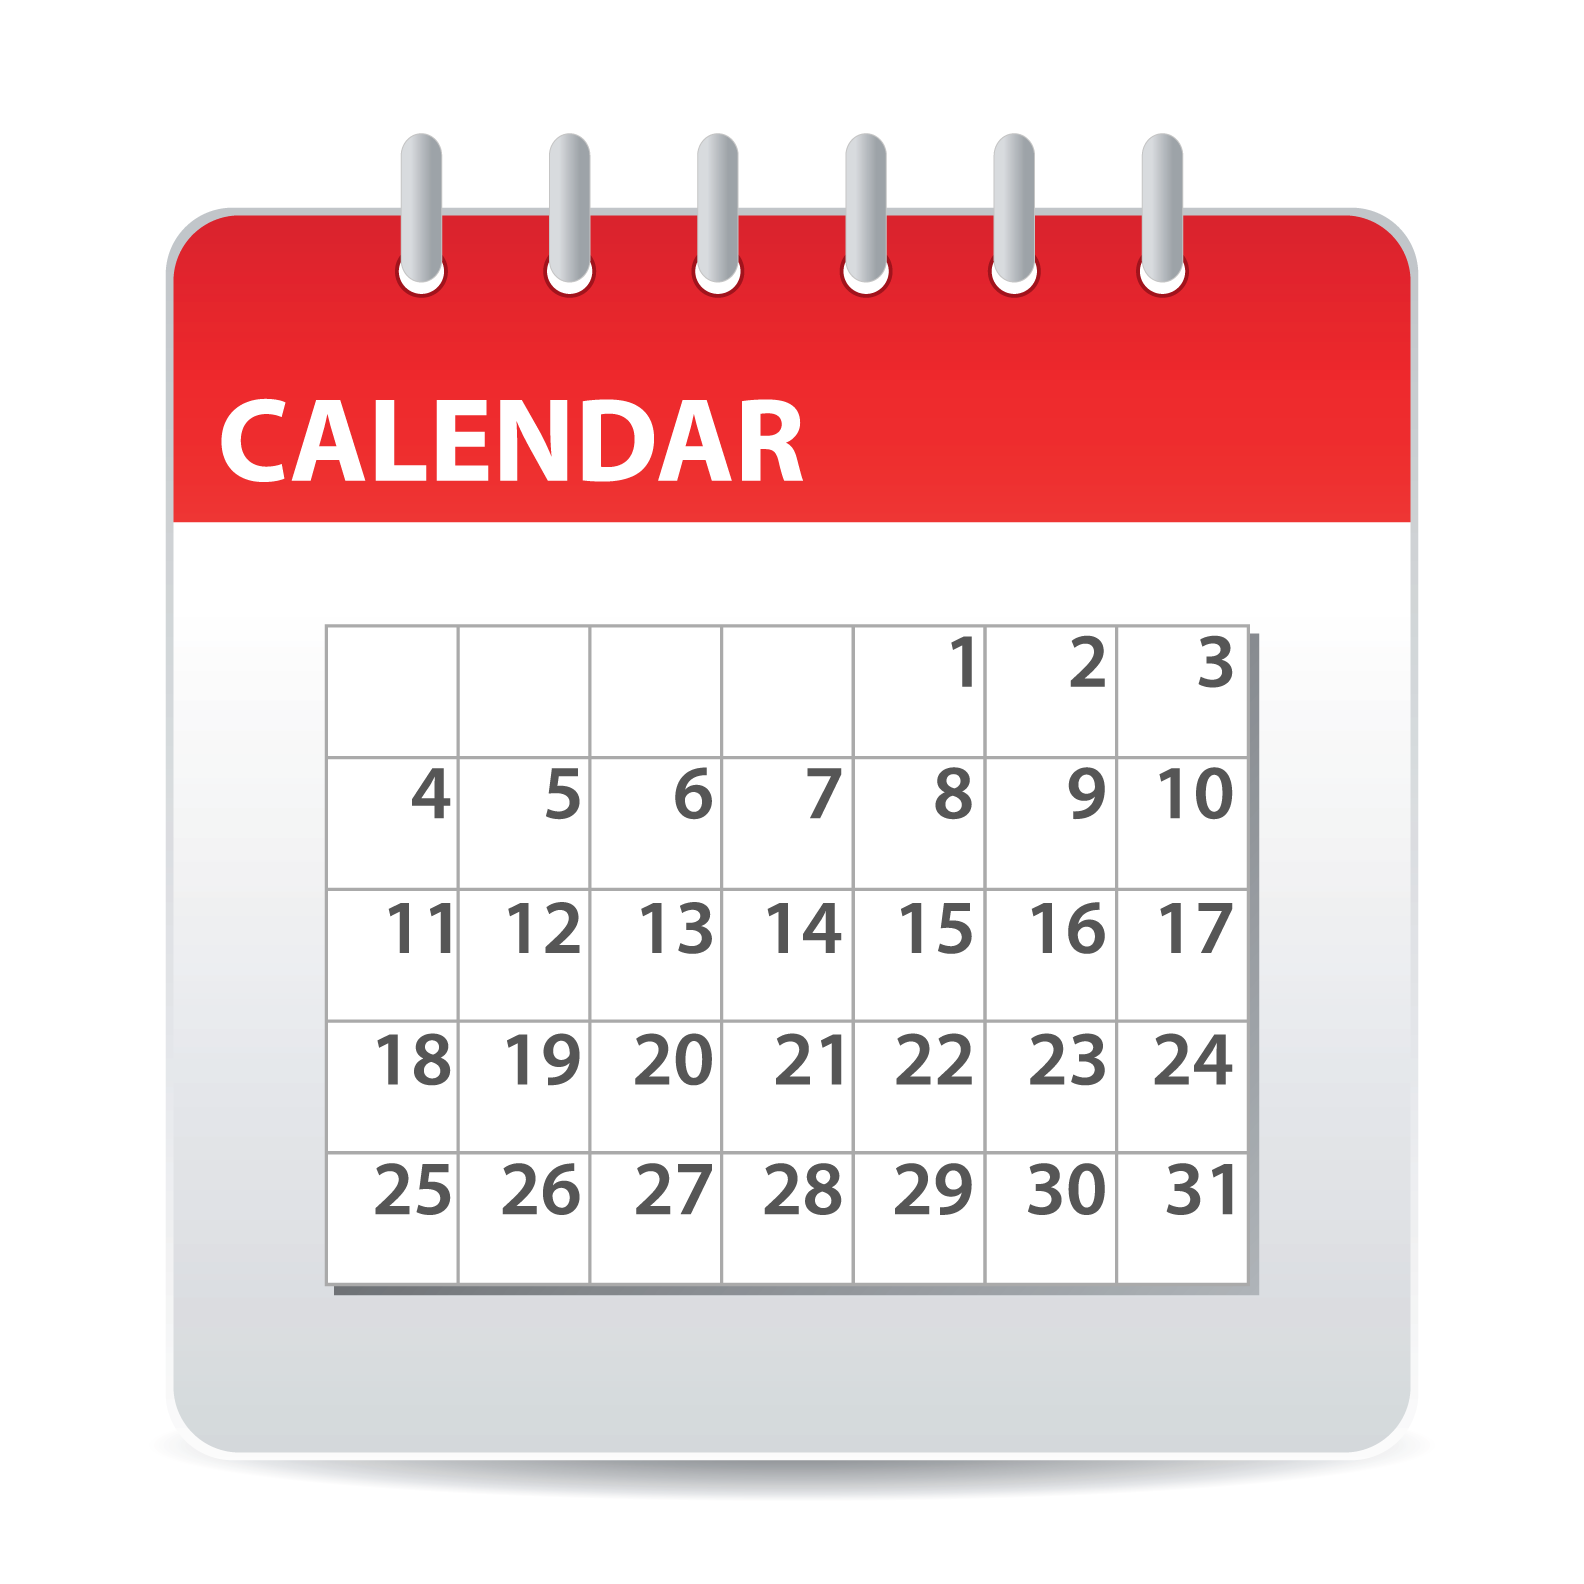 2020 2021 School Calendar - Riceville Community School District For Red Bluff High School Calendar 2021  2020